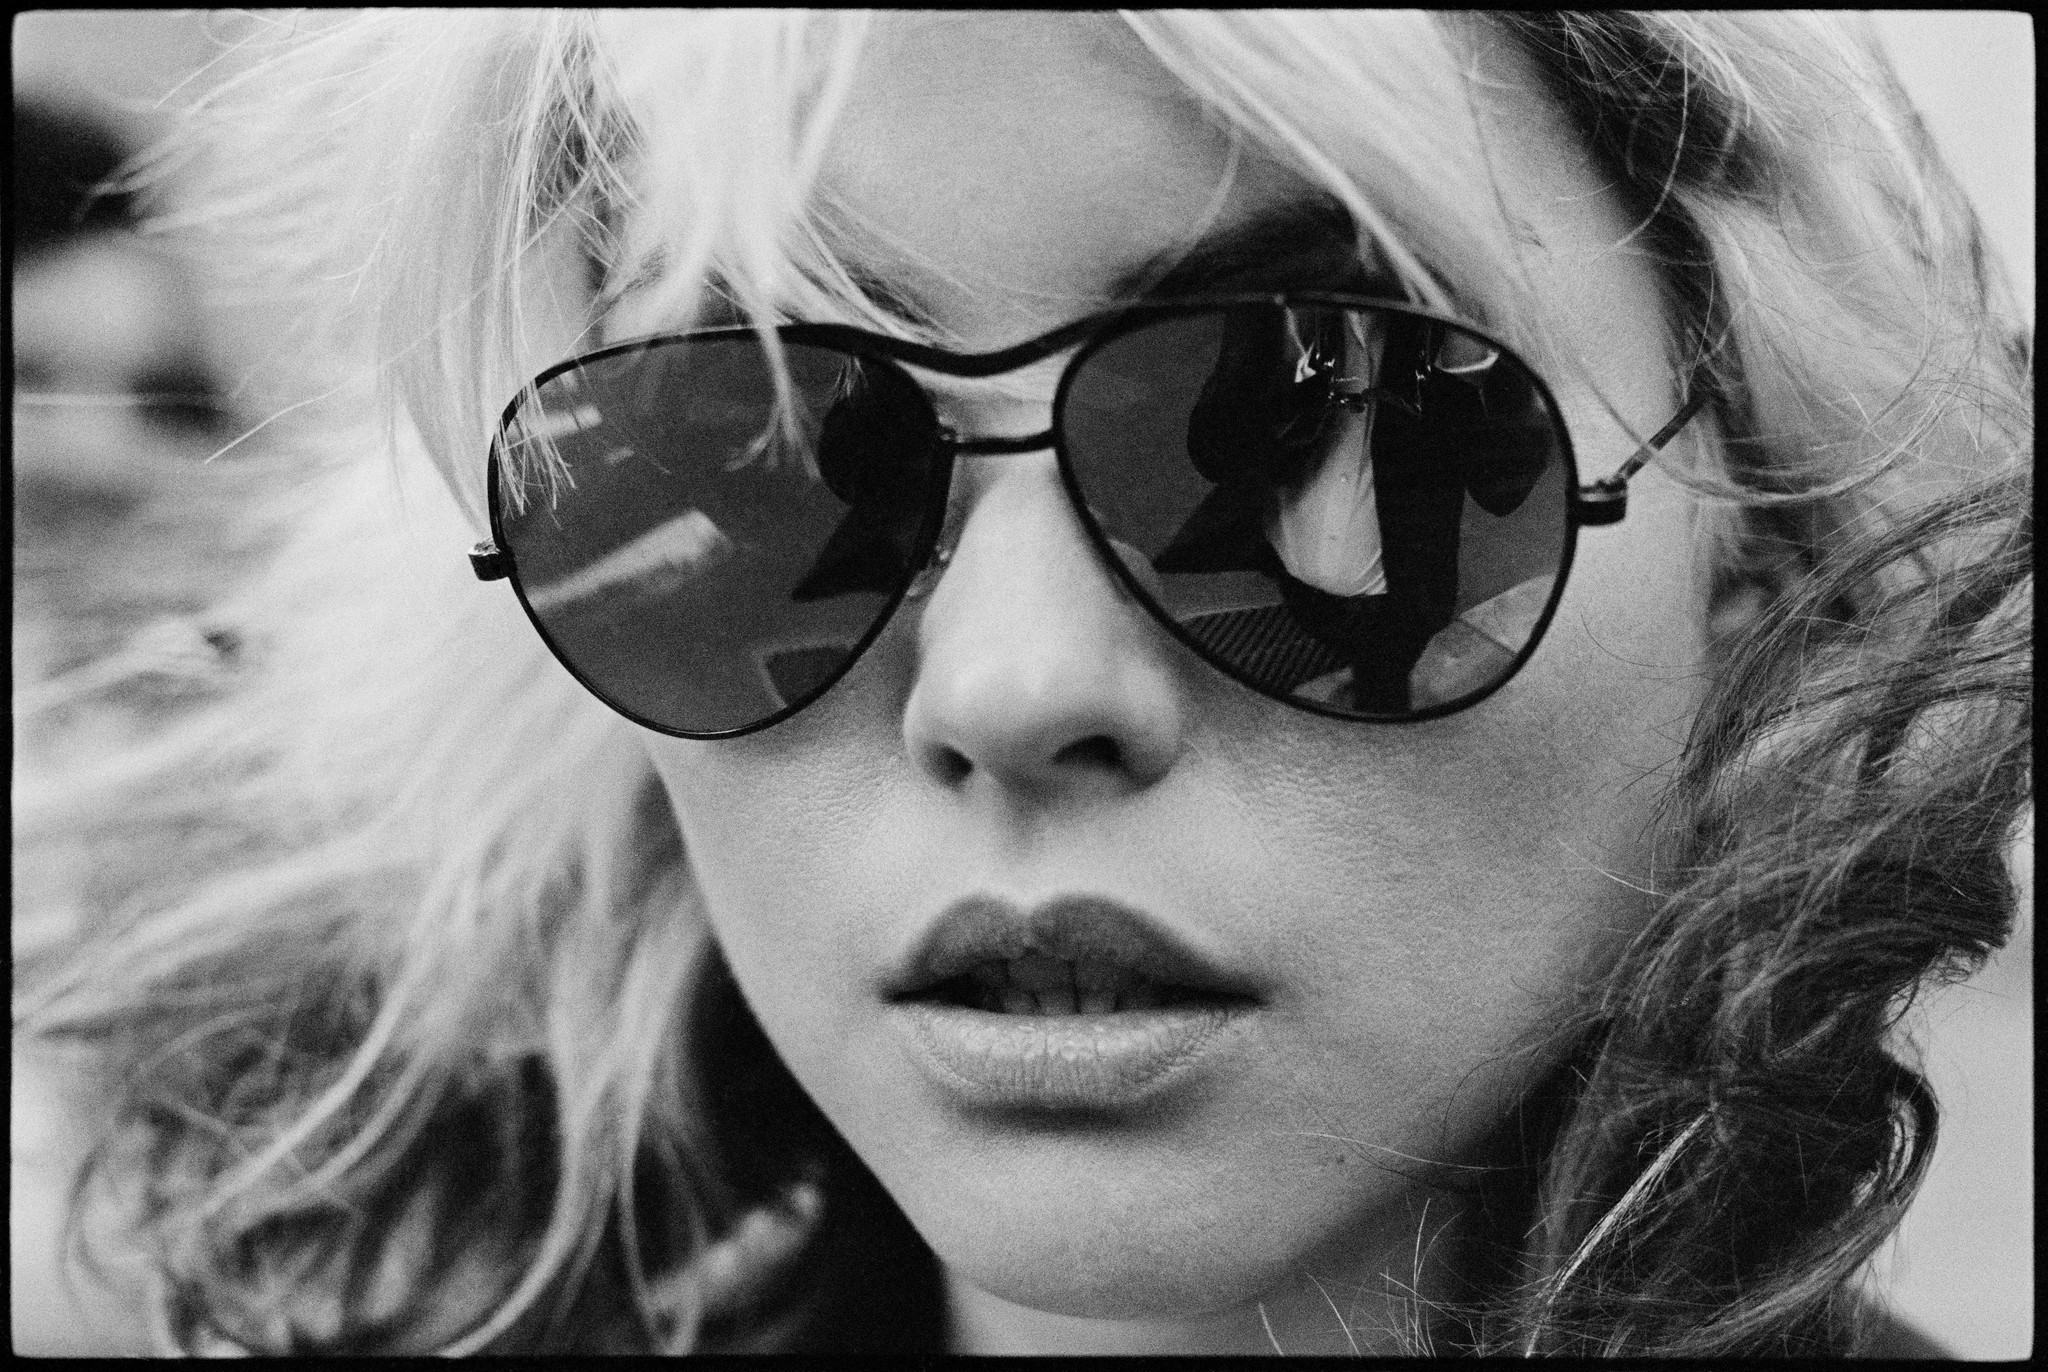 Does young debbie harry sorry, that